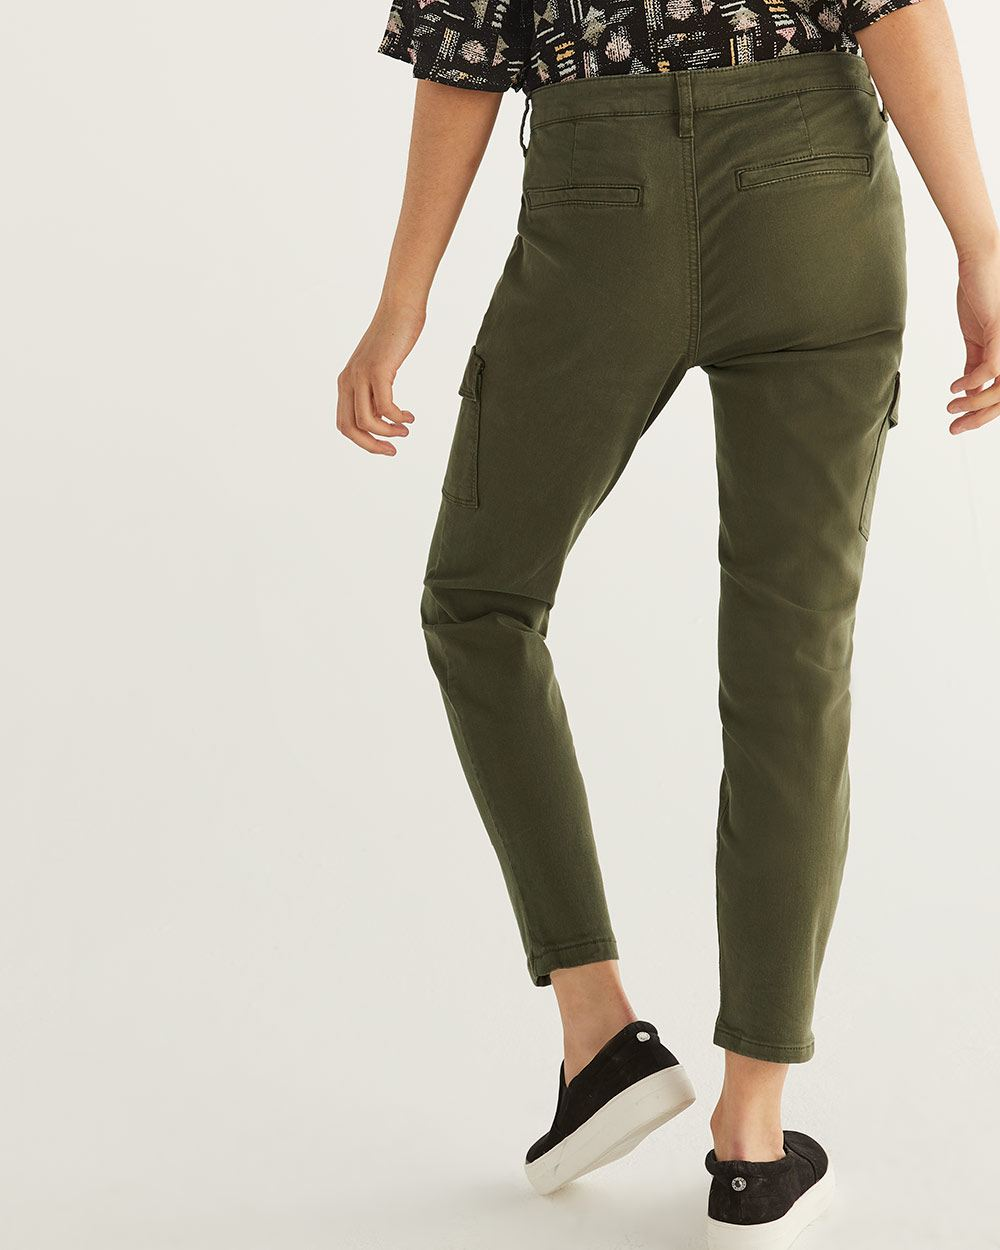 Skinny Ankle Cargo Pants - Tall